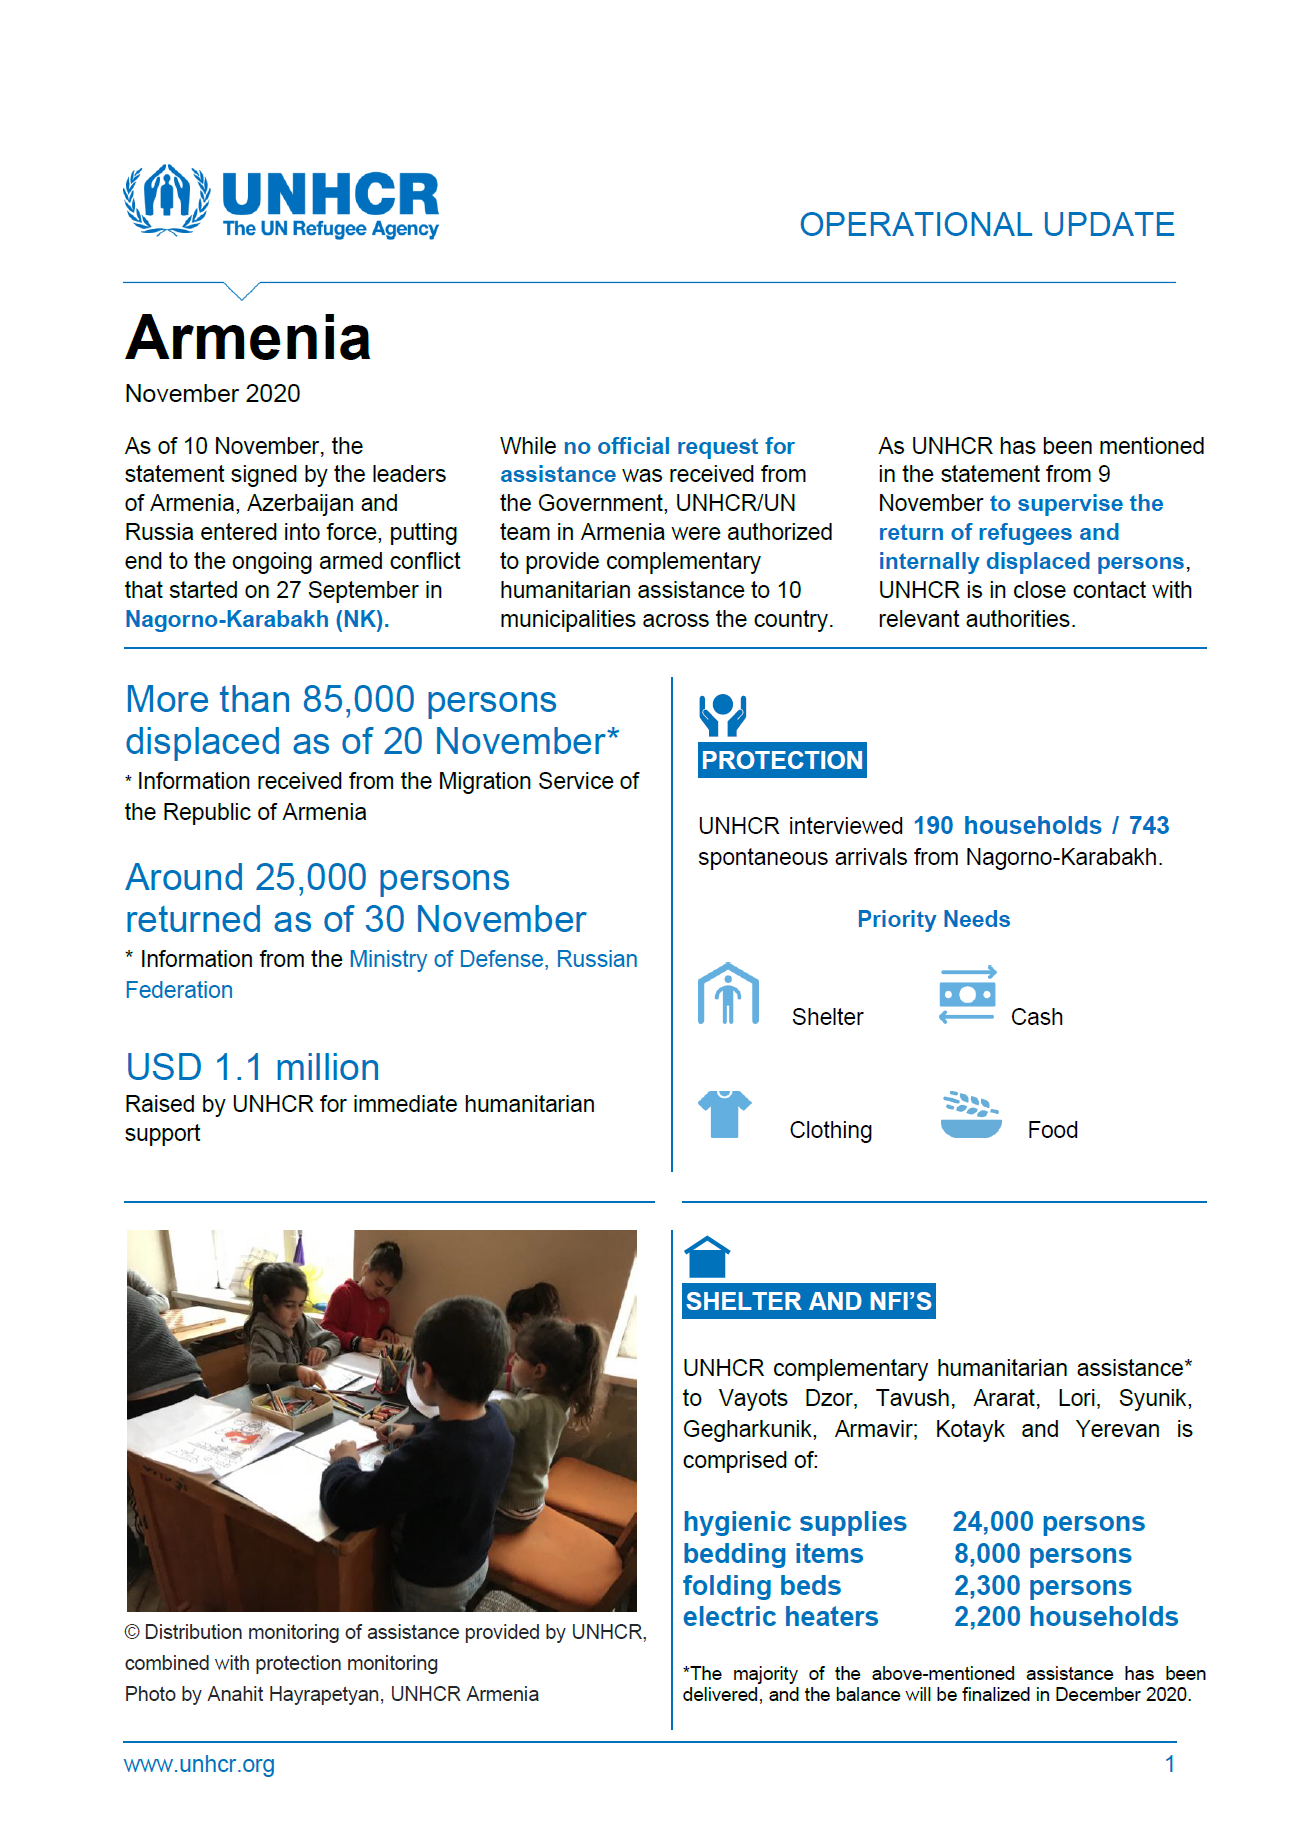 UNHCR Armenia Operational Update's cover page for November 2020.